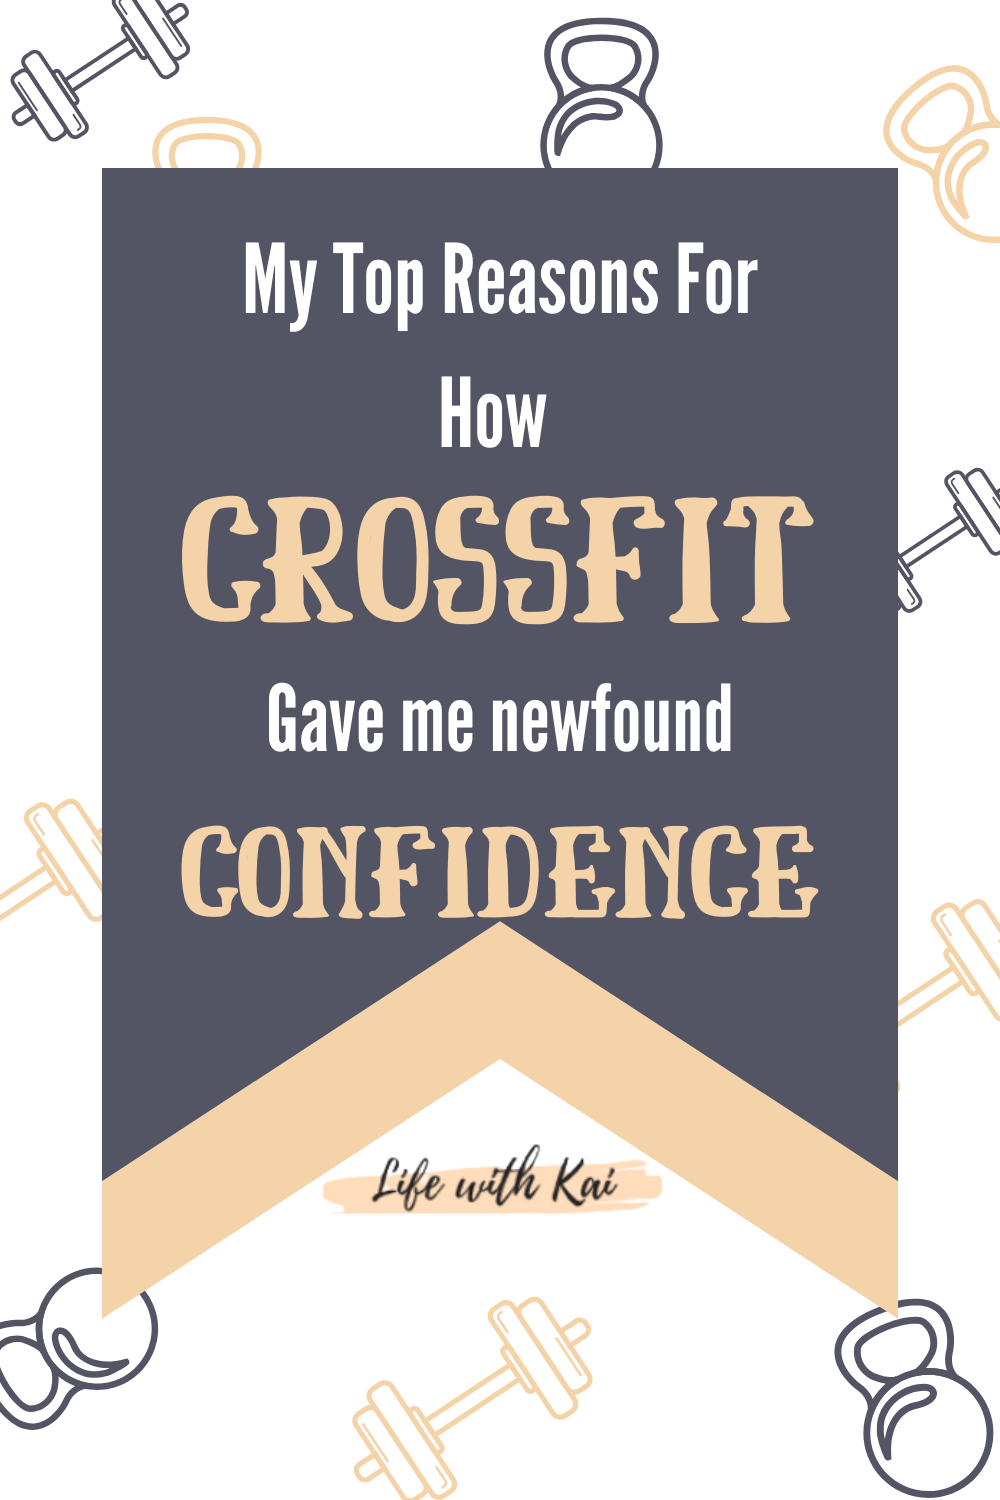 Join me on the blog where I share a part of my story with how I have struggled with negative body image since I was 7 years old and how I am overcoming those negative thoughts with CrossFit. Not only does CrossFit boost my confidence, but it helps me practice a more positive mindset and is allowing me to cultivate self-love. See my top reasons how now!  #bodyimage #selflove #crossfit #confidence #mindset #wellness #healthandwellness #fitness #exercise #howtogainconfidence #positivity